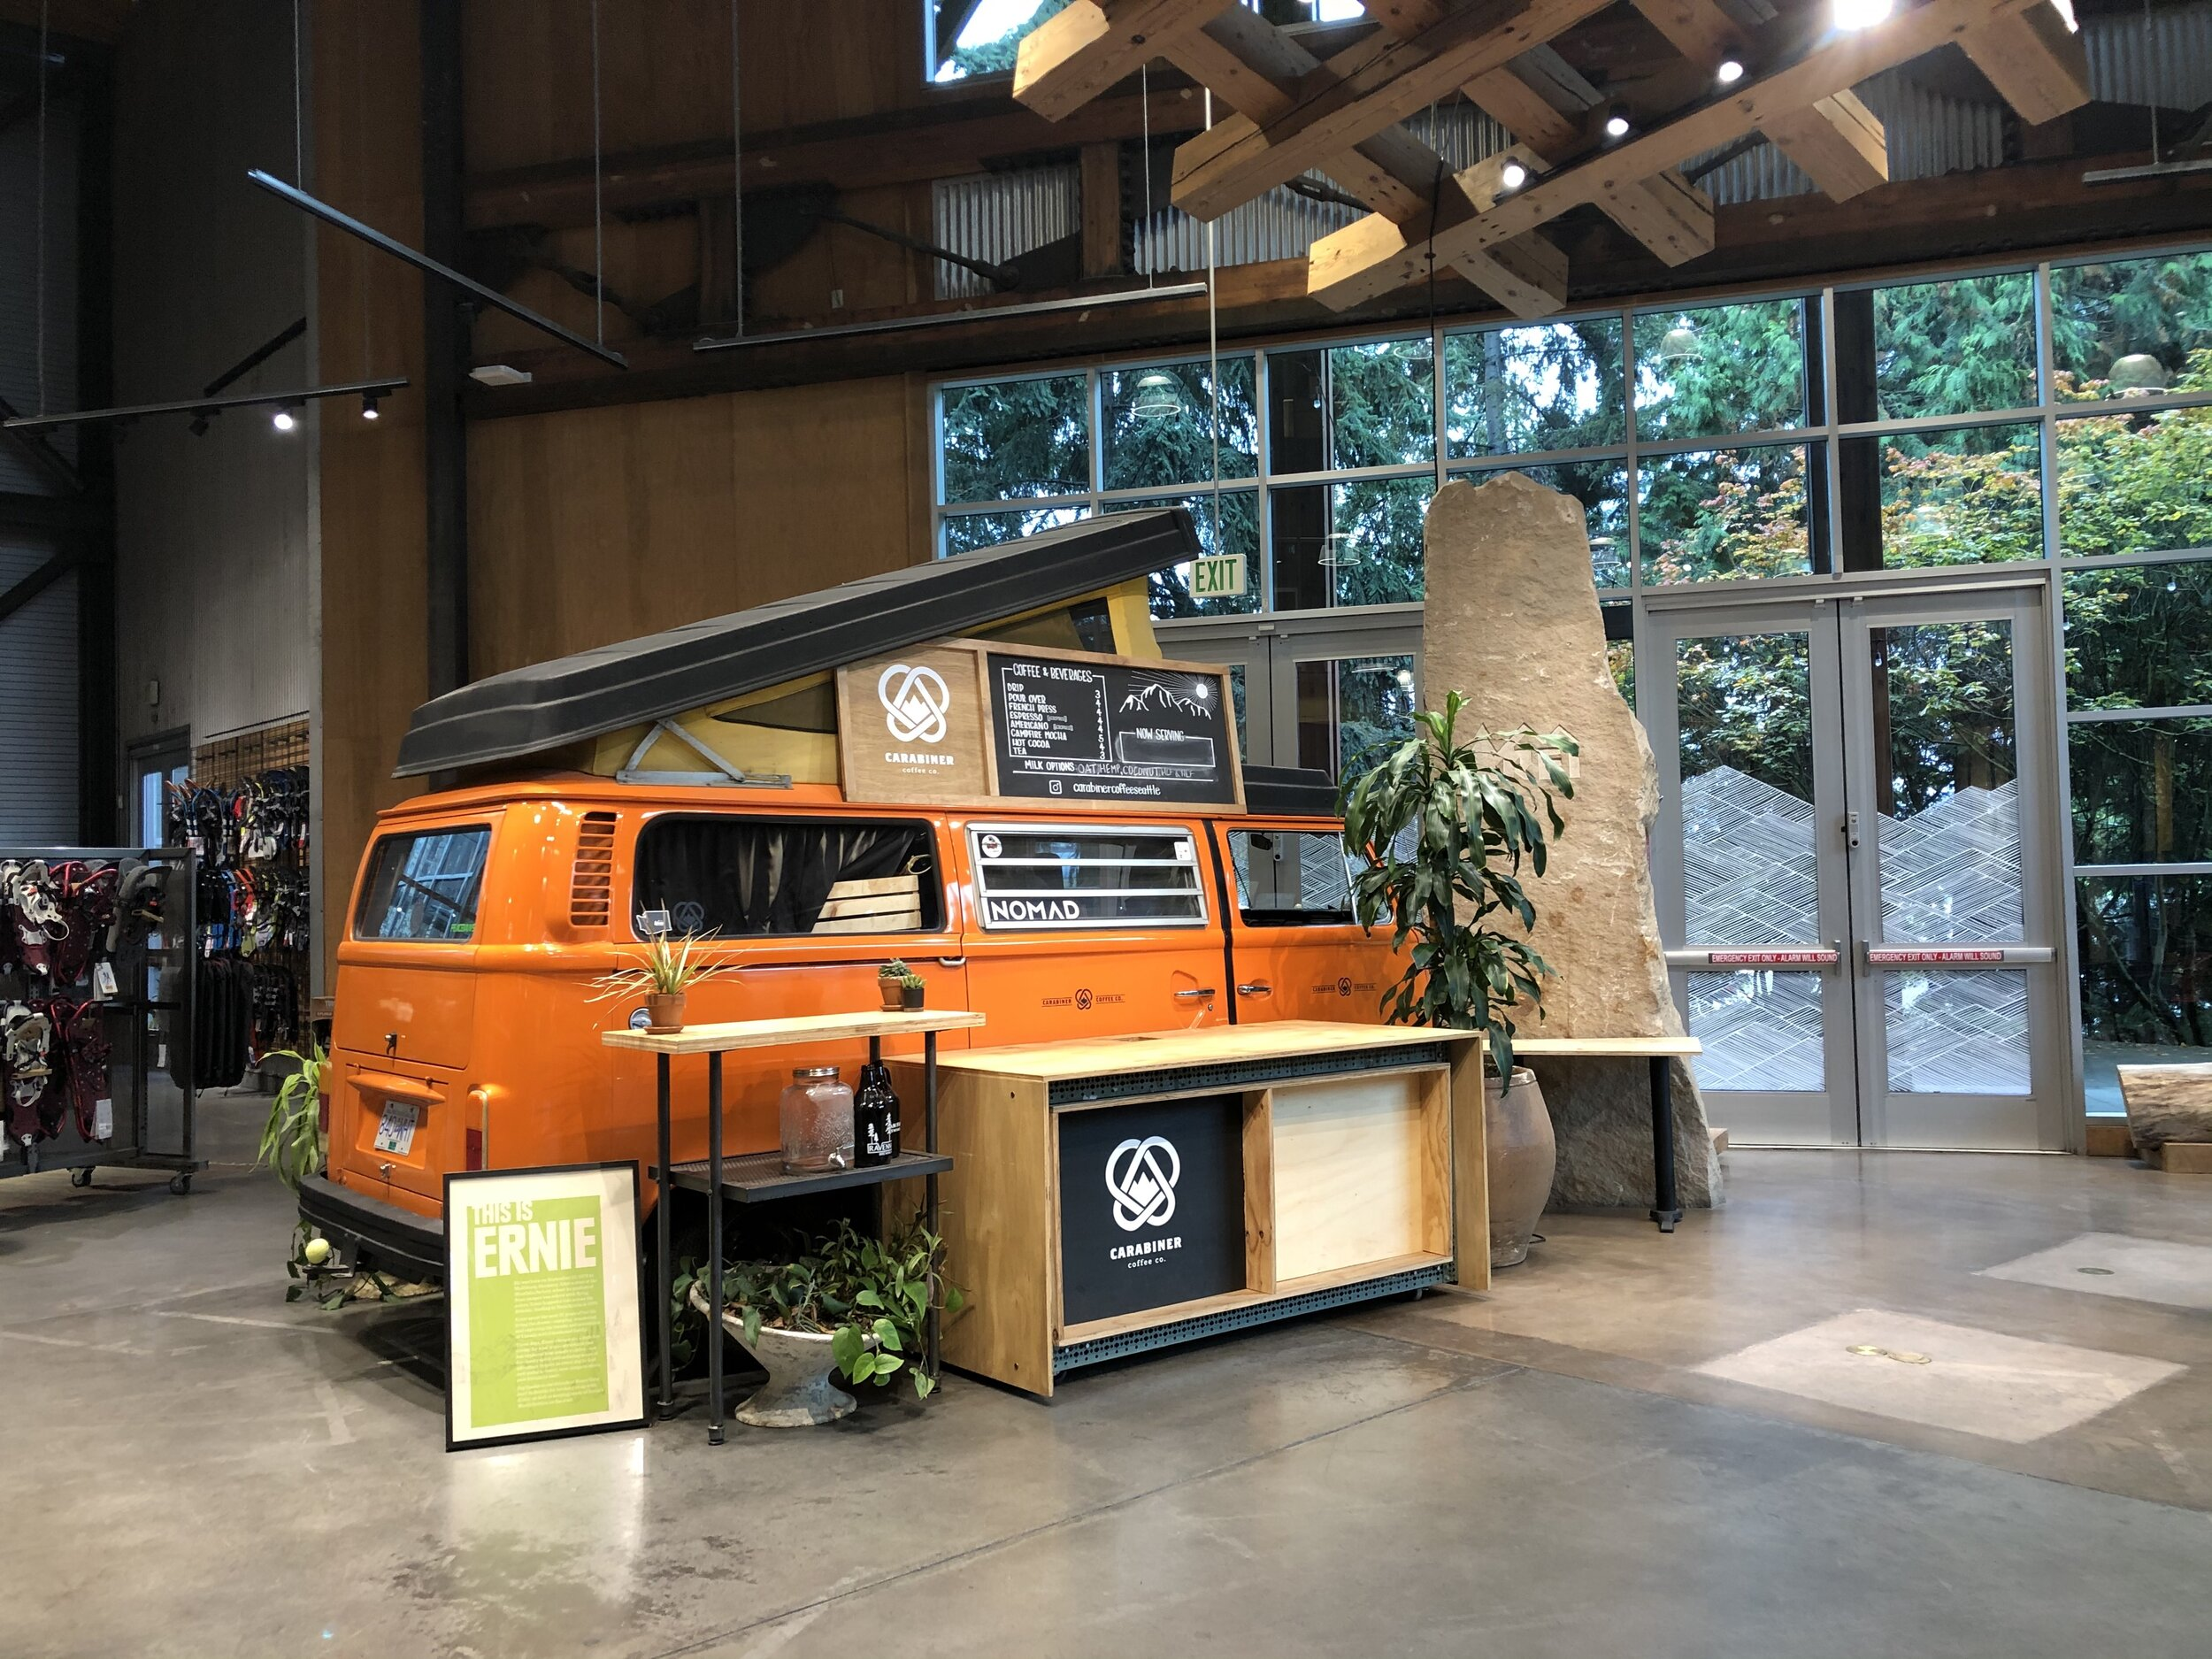 Ernie the camper at the REI flagship store.